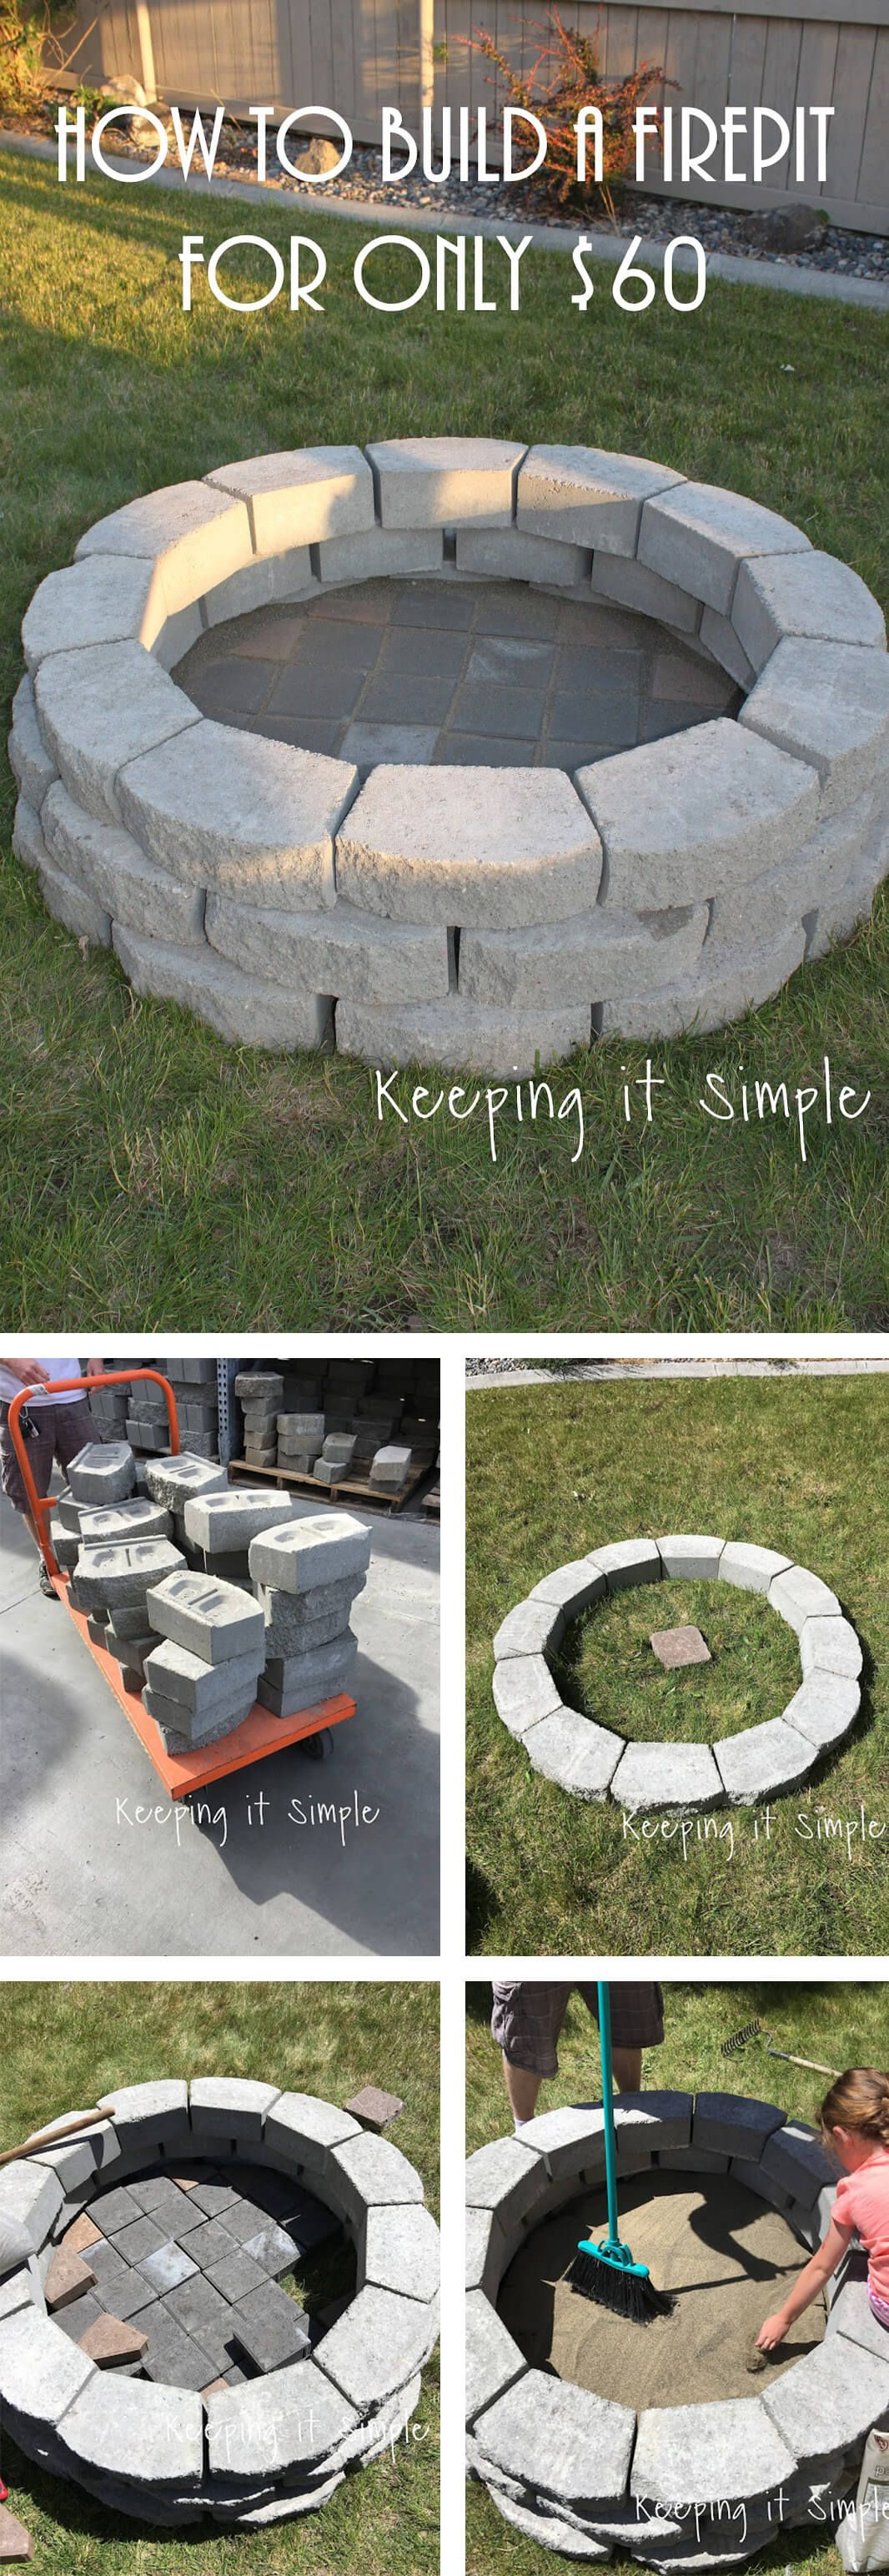 27 awesome diy firepit ideas for your yard - Fire Pit Ideas Patio